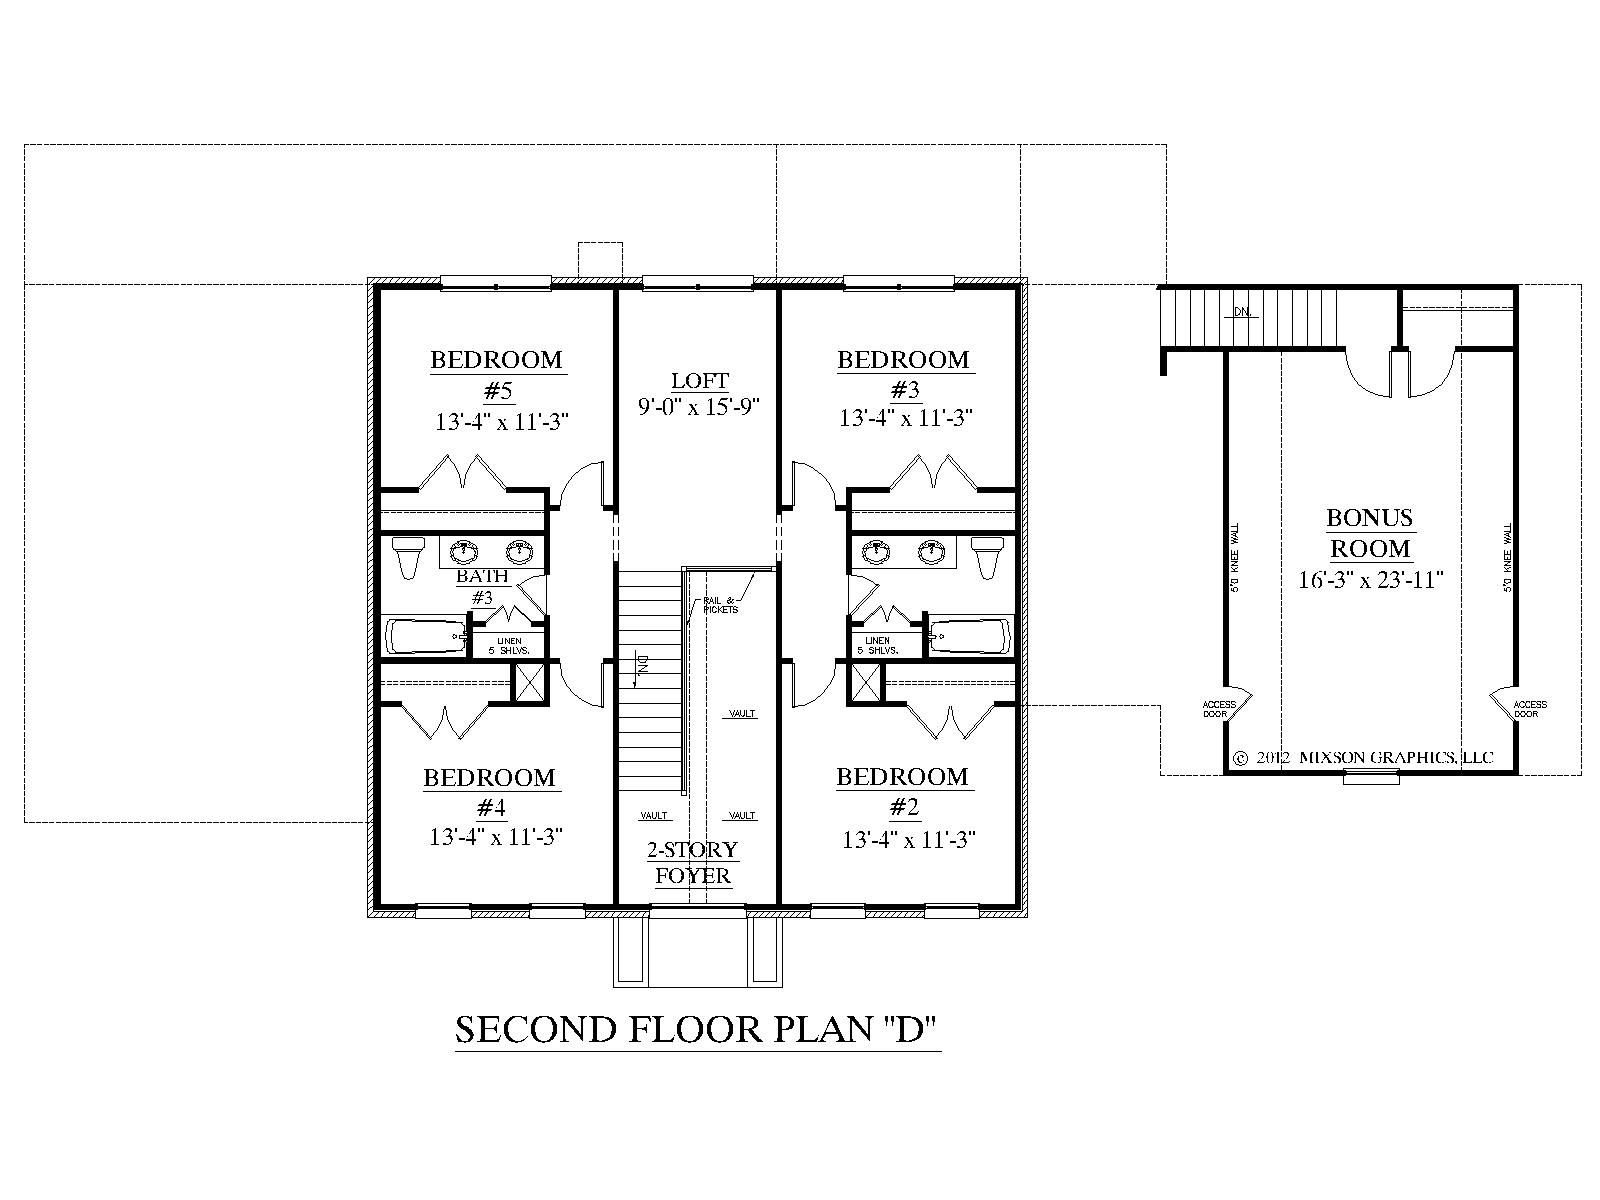 House Plan 3397-D ALBANY | House Plans | Pinterest | House, Loft ...